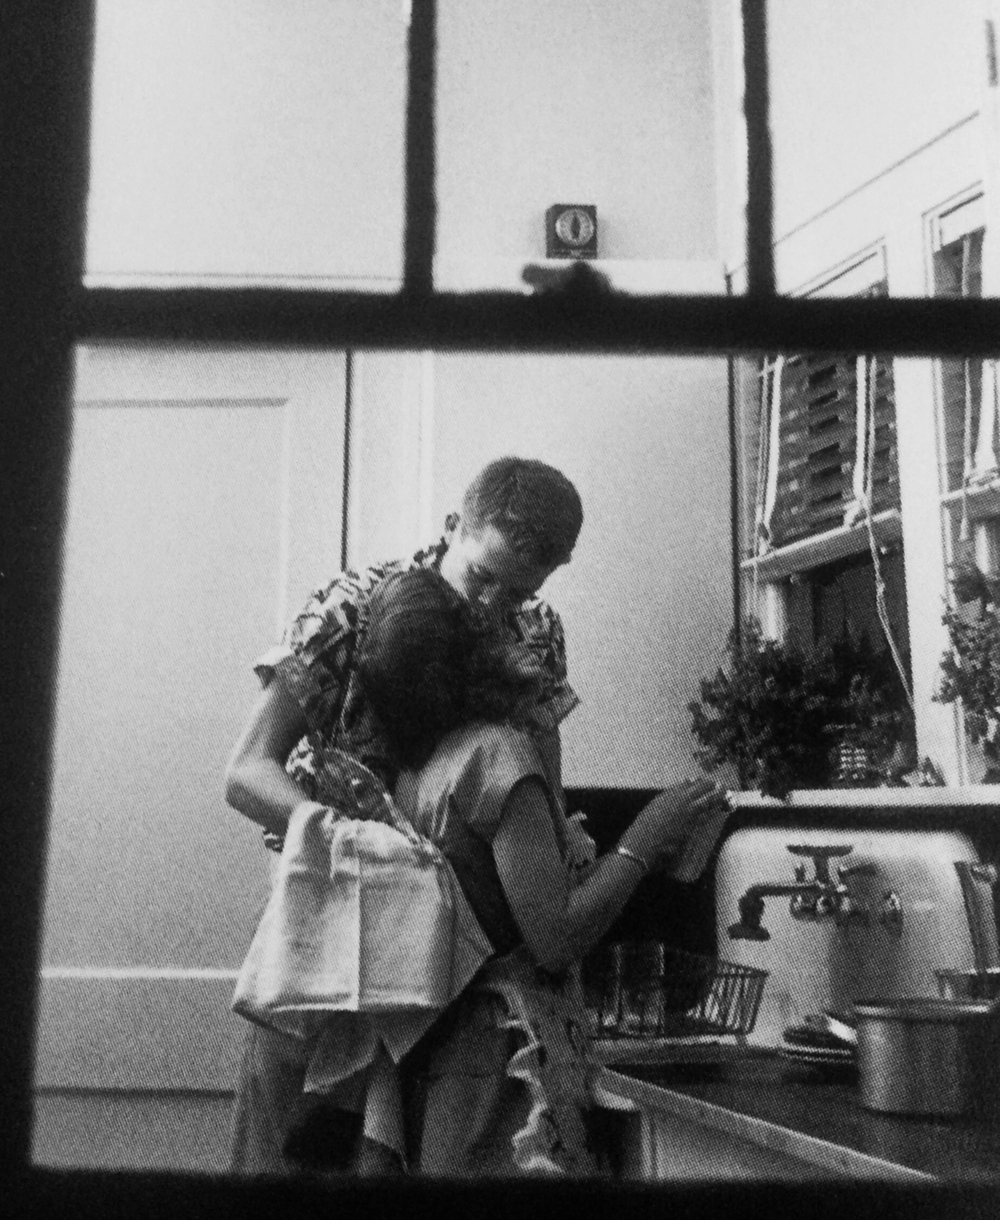 """Doing Dishes"" by Carl Iwasaki, 1954"